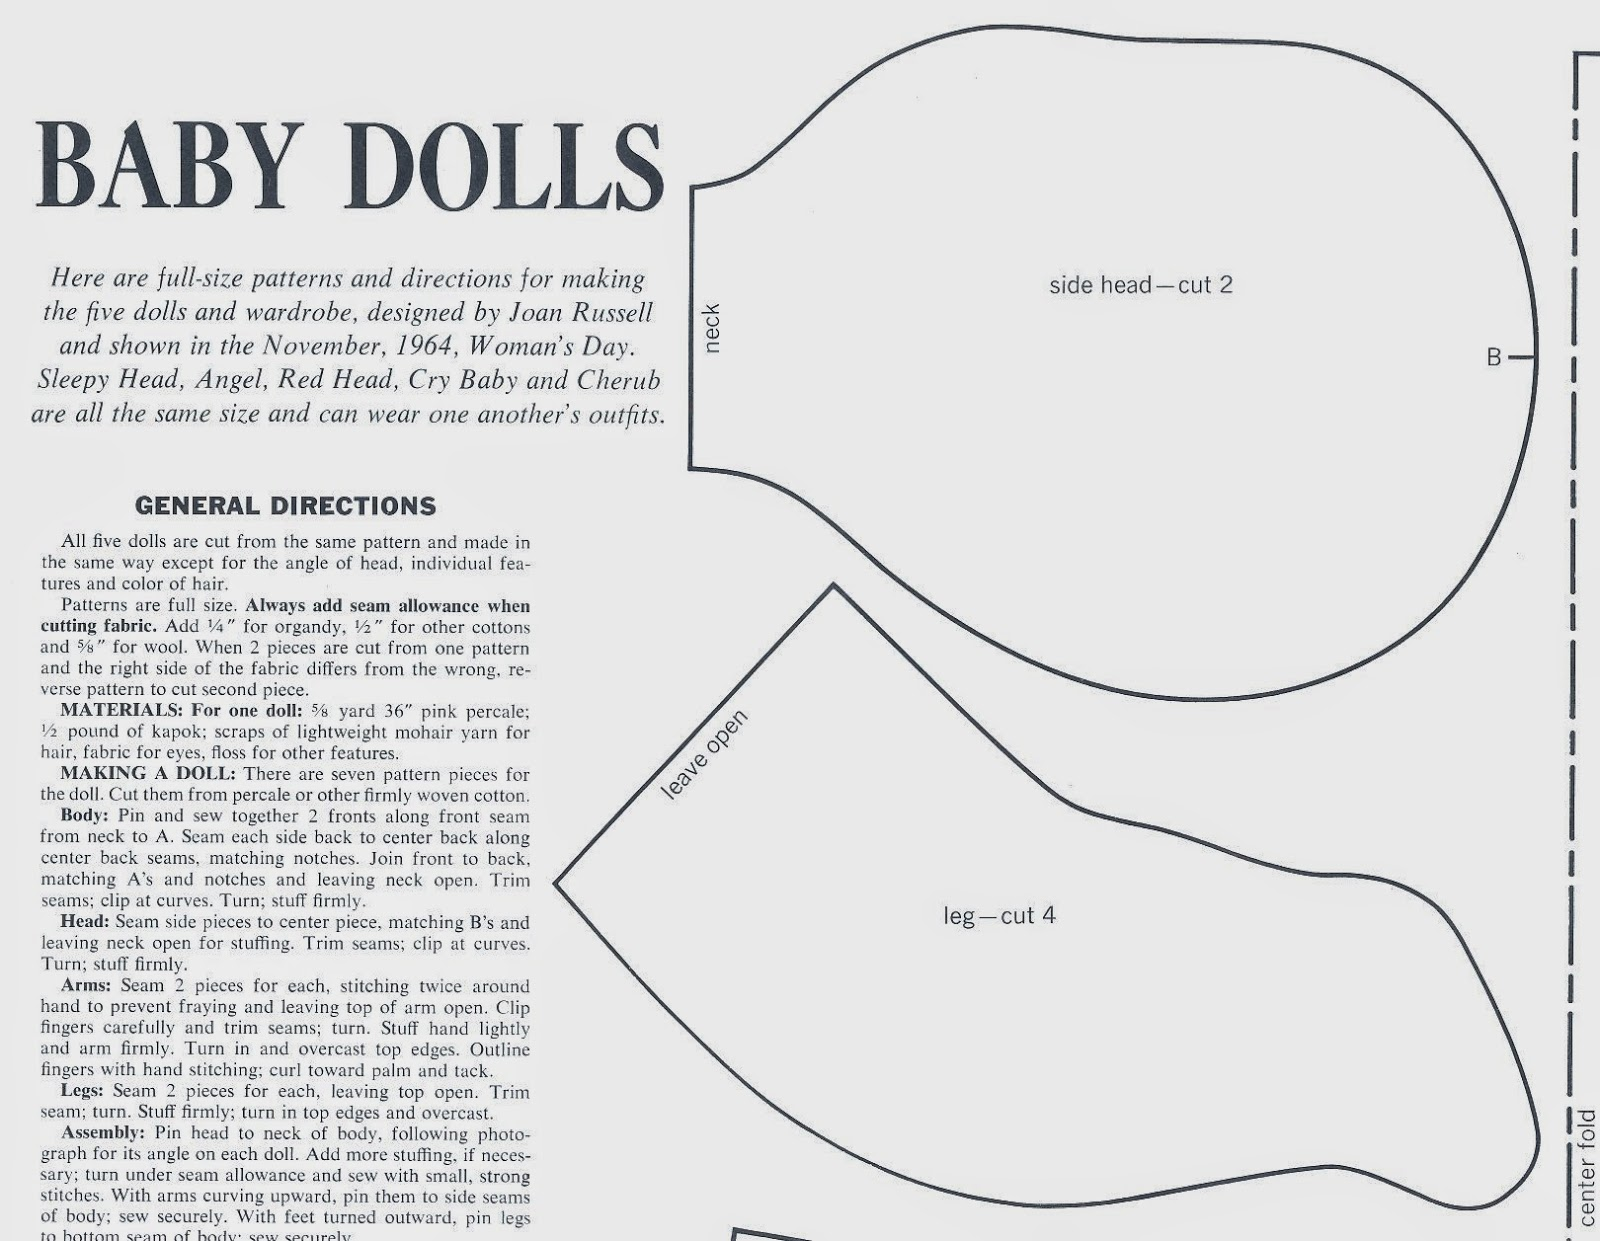 Vintage Cloth Doll Patterns Baby Dolls By Joan Russell